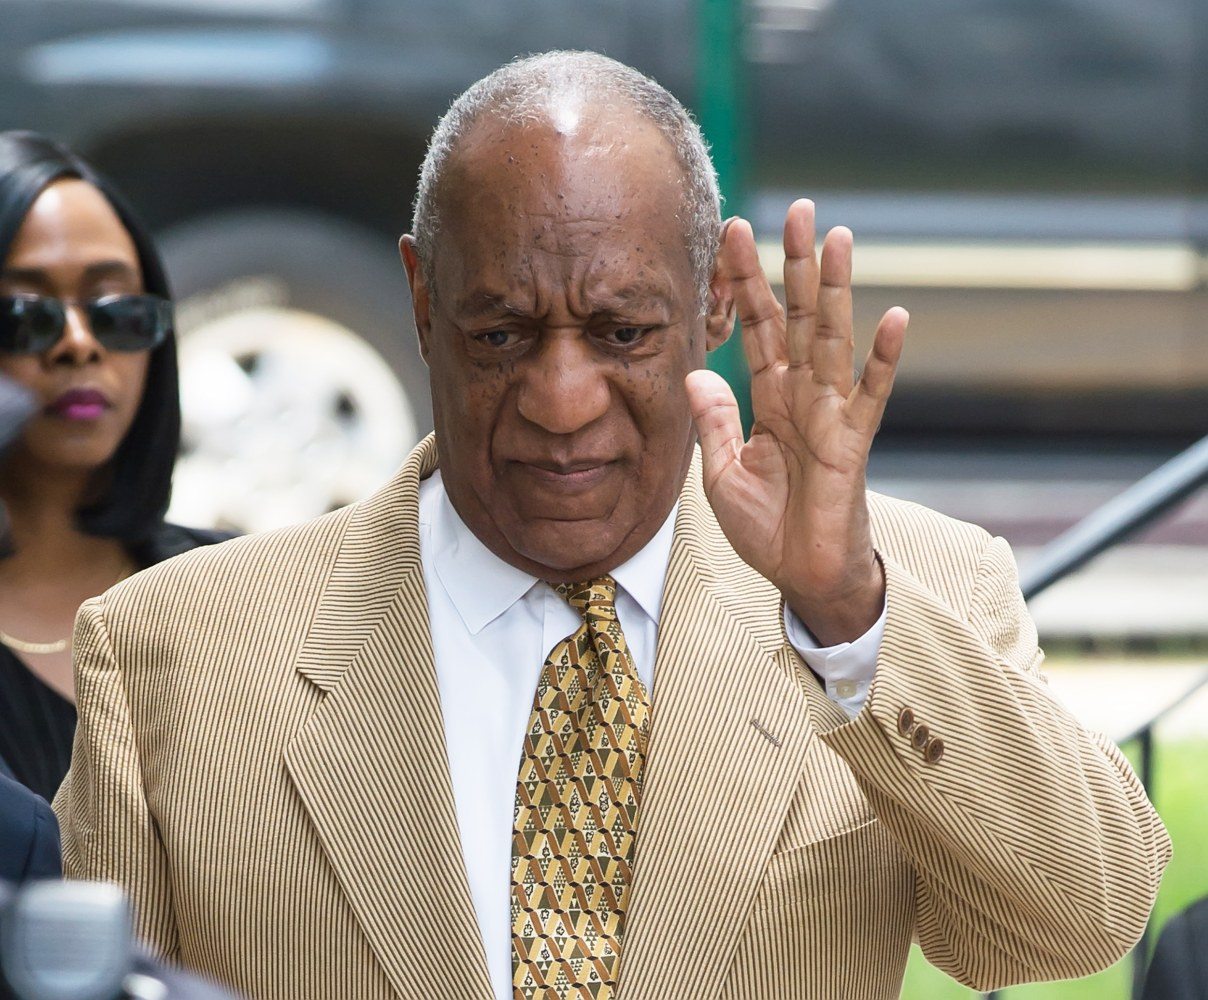 Will Cosby trial be moving from Norristown? Judge to hear arguments today